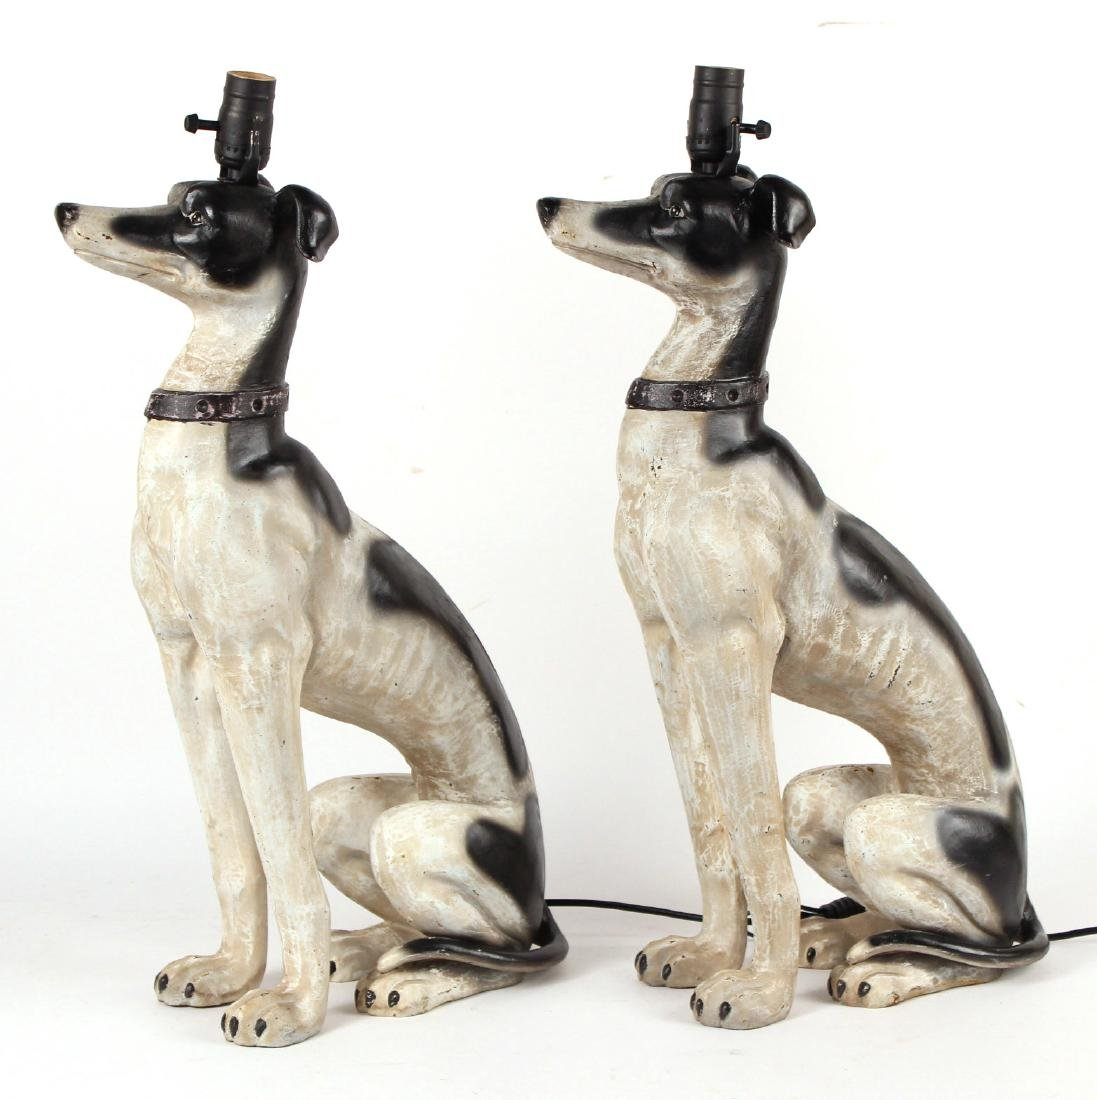 Pair of Painted Metal Whippet-Form Table Lamps